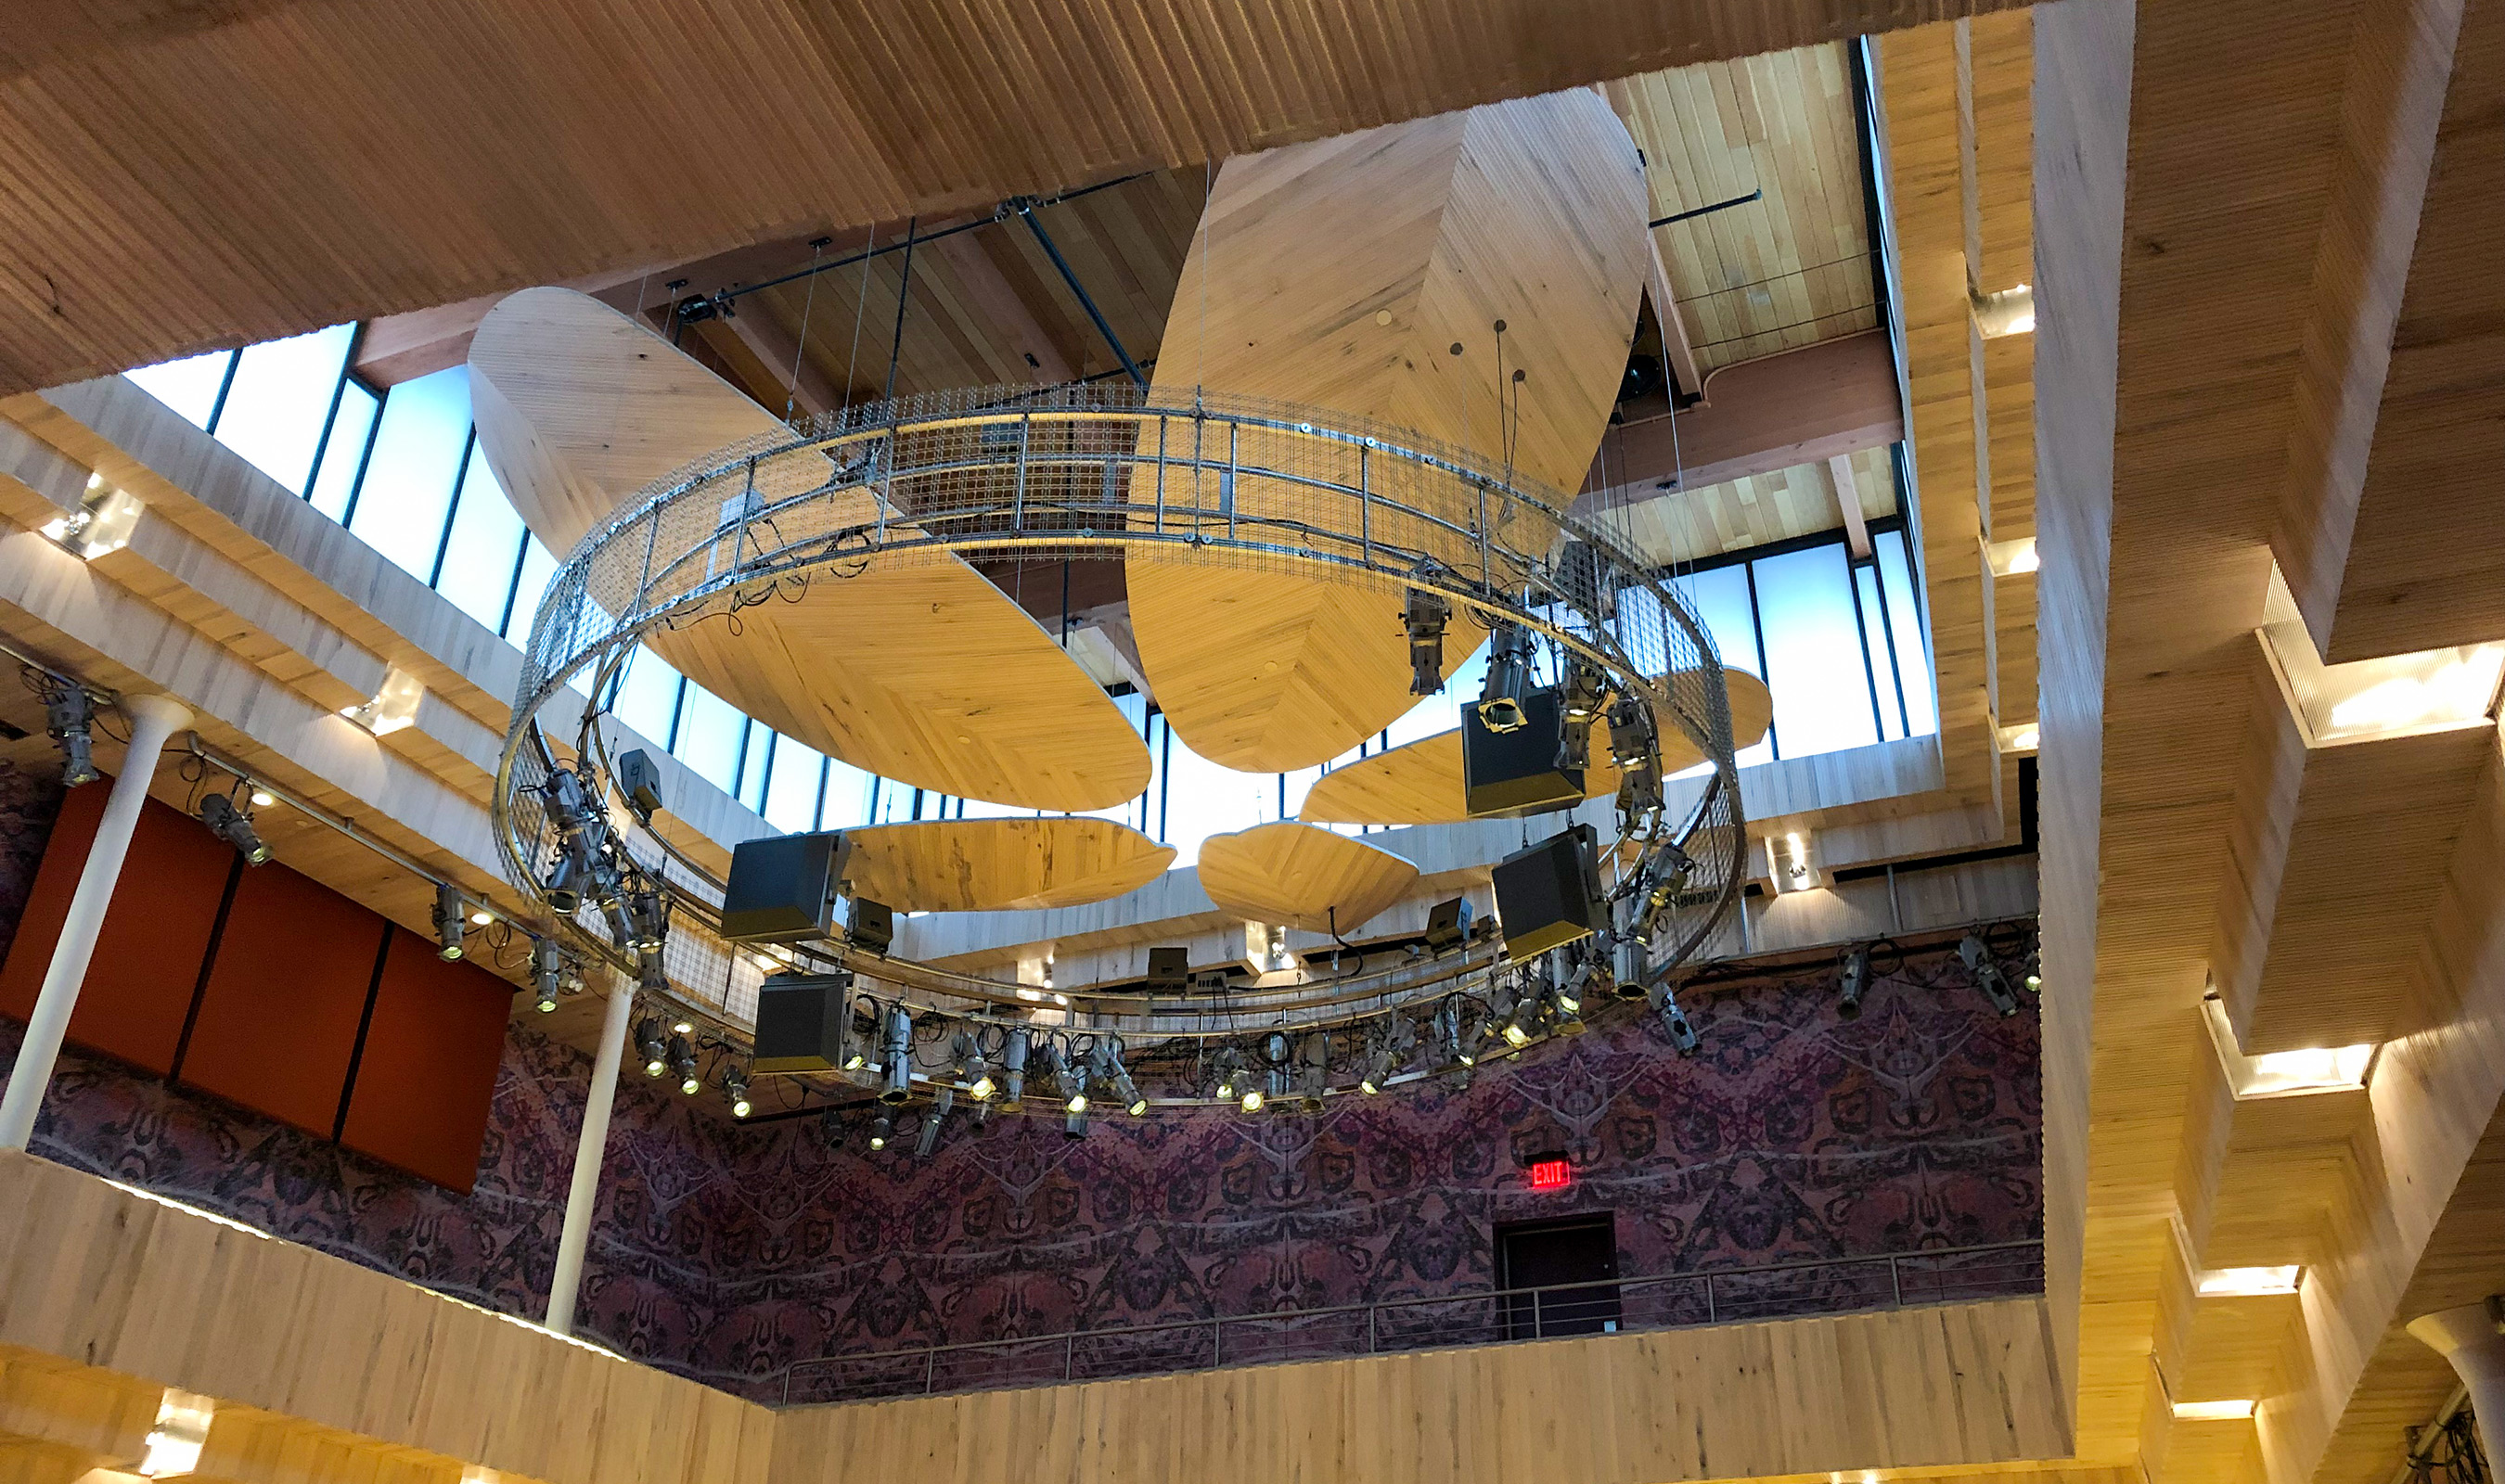 A frameless approach was taken with Banker Wire's M24Z-12 woven wire mesh for the two custom tiaras that house lighting and sound equipment in the Collins Recital Hall.